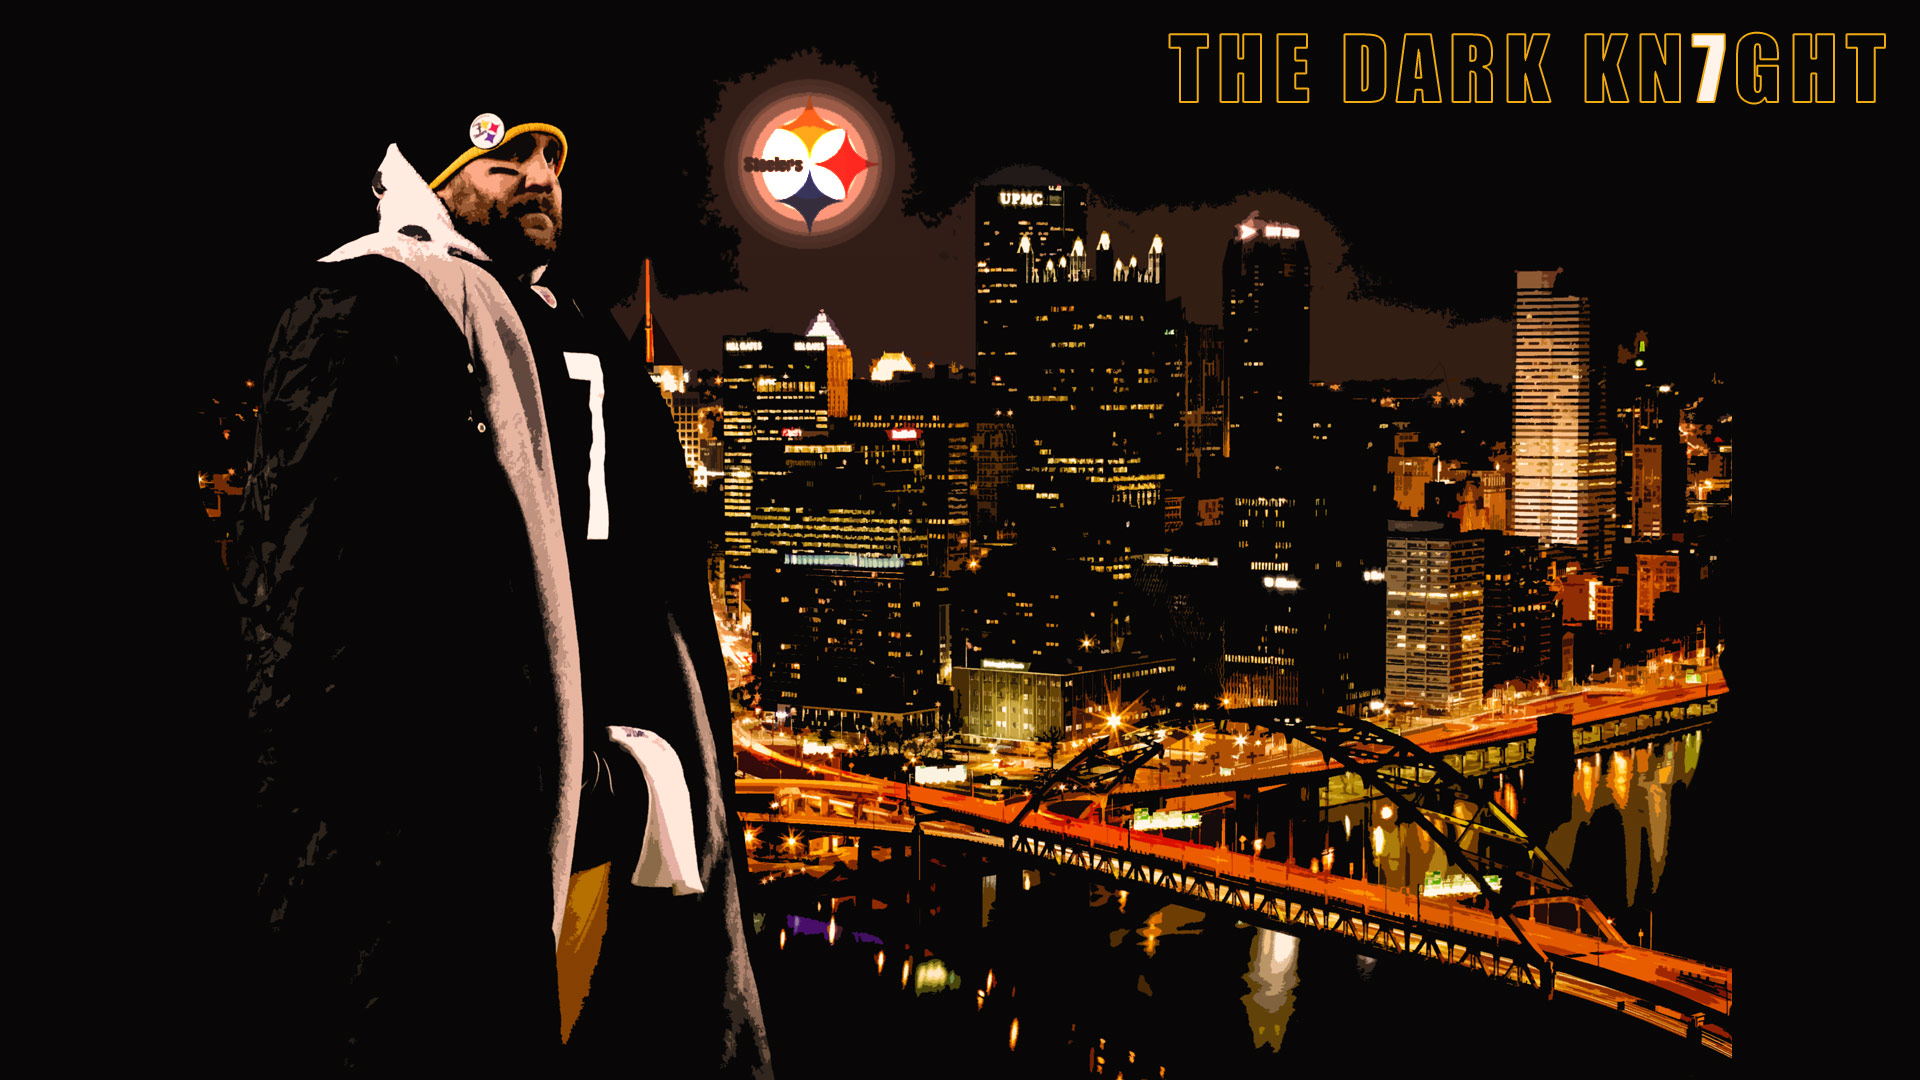 Steelers Wallpaper 2013 wallpaper   901374 1920x1080